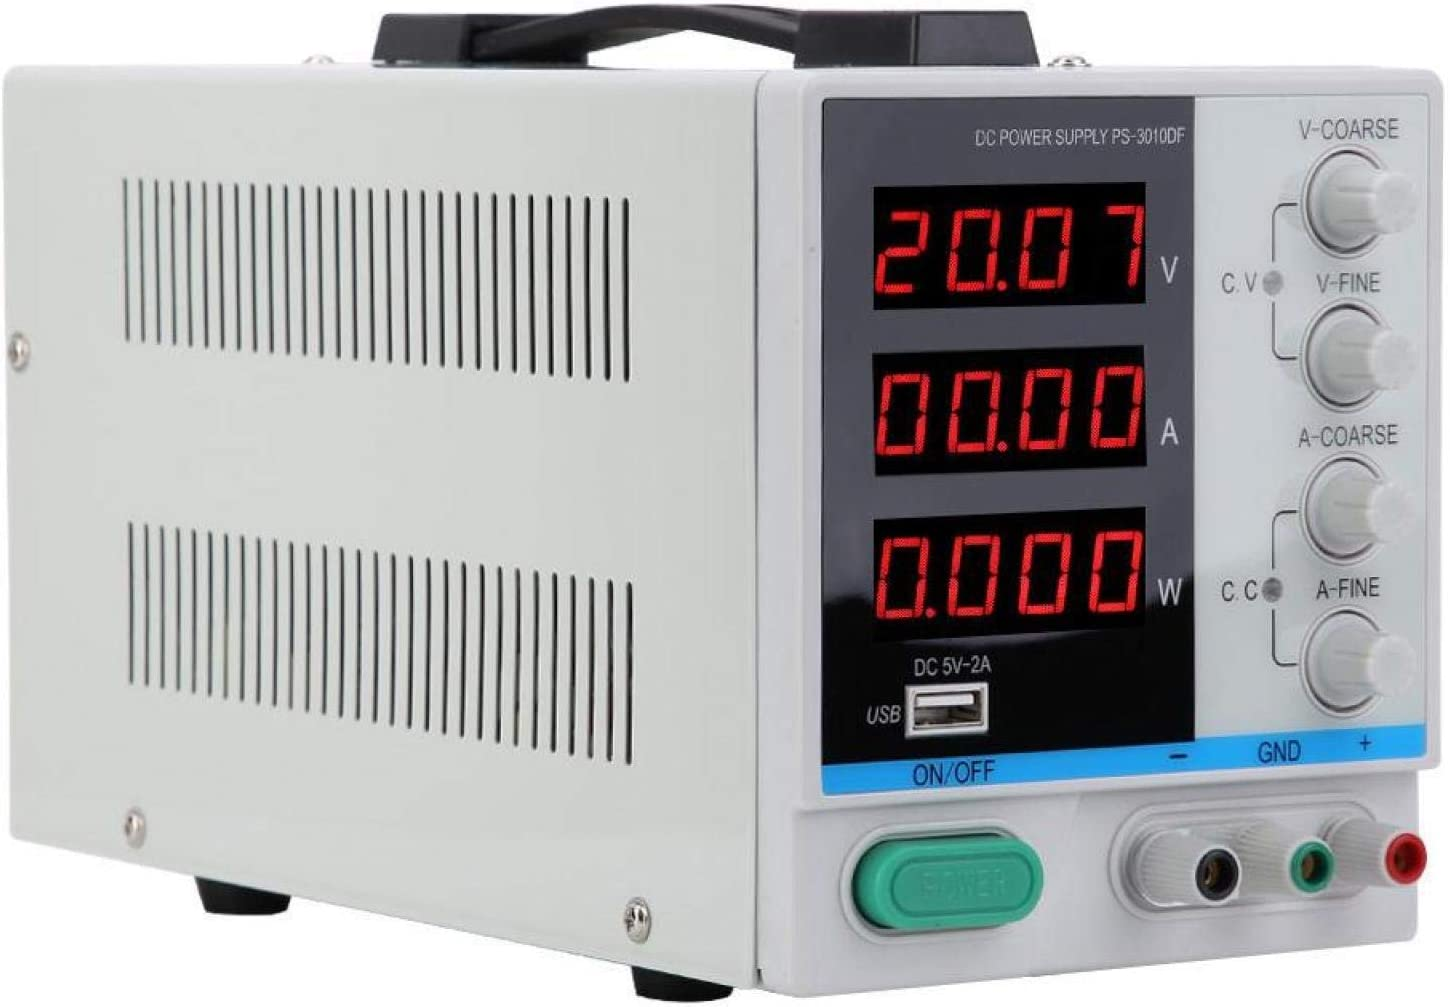 PS‑3010DF Small Size Regulated Sales of SALE items from new works Soldering Power DC Supply 30